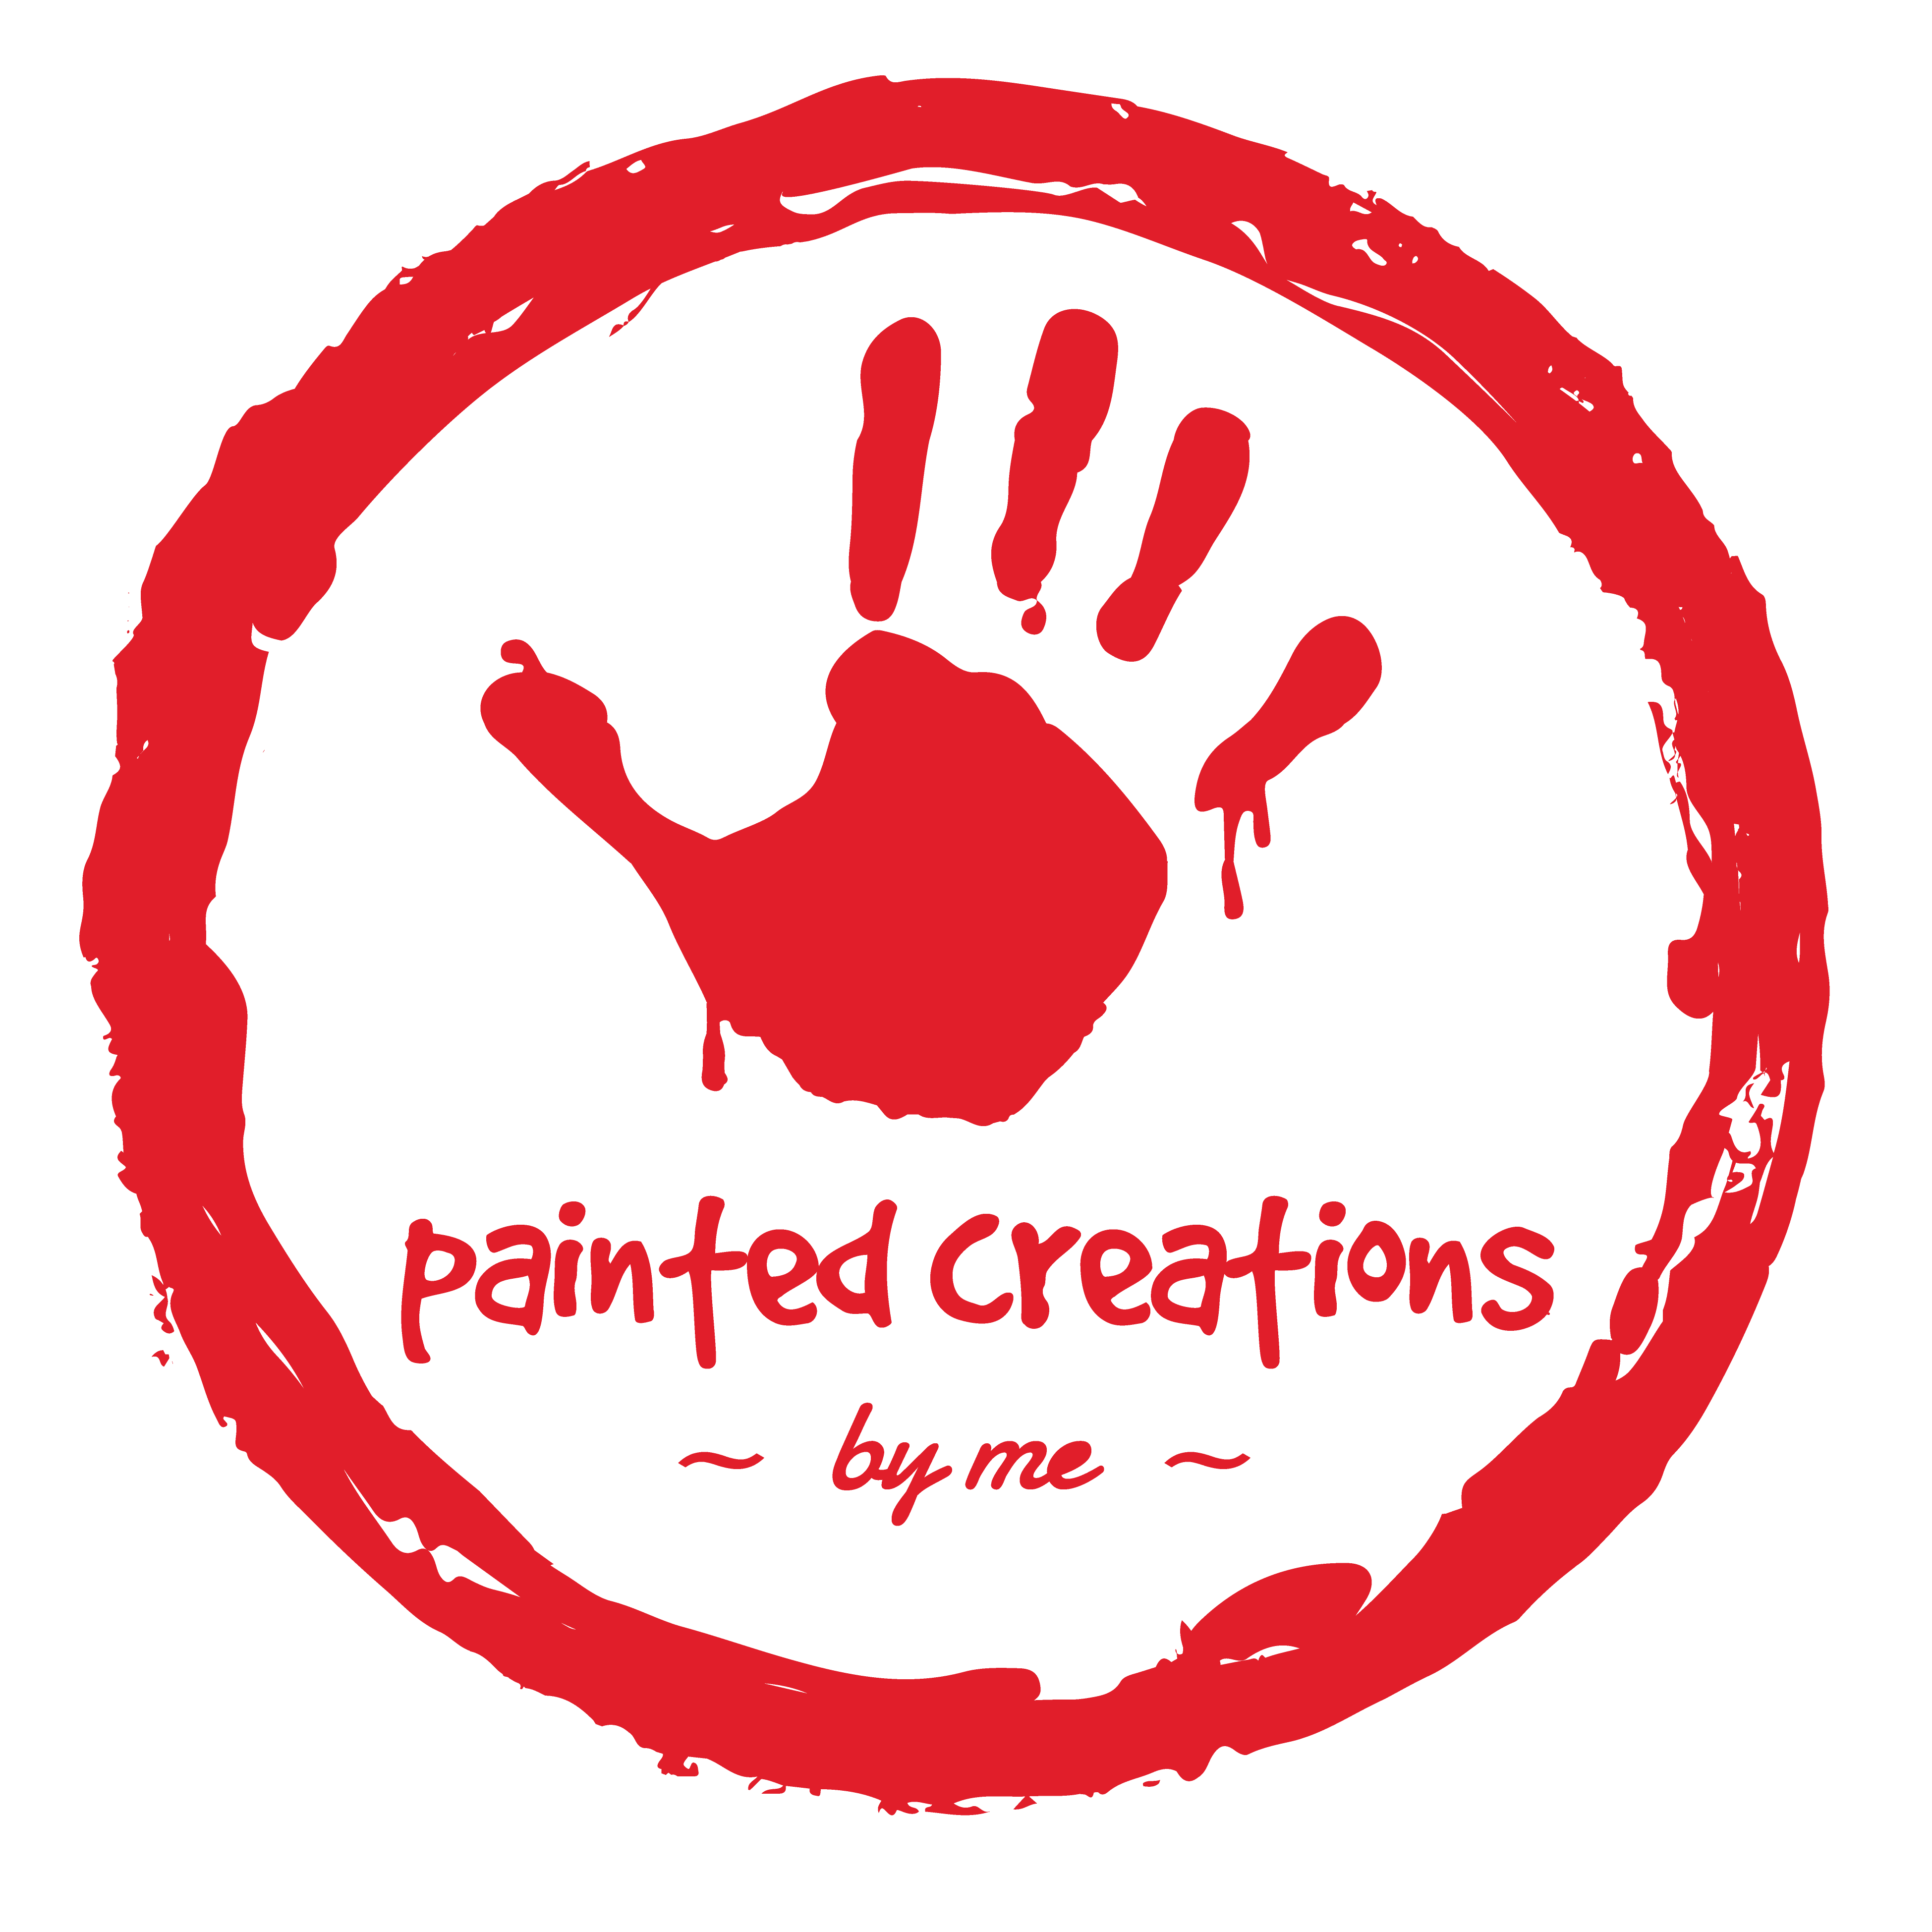 painted creations by me - red